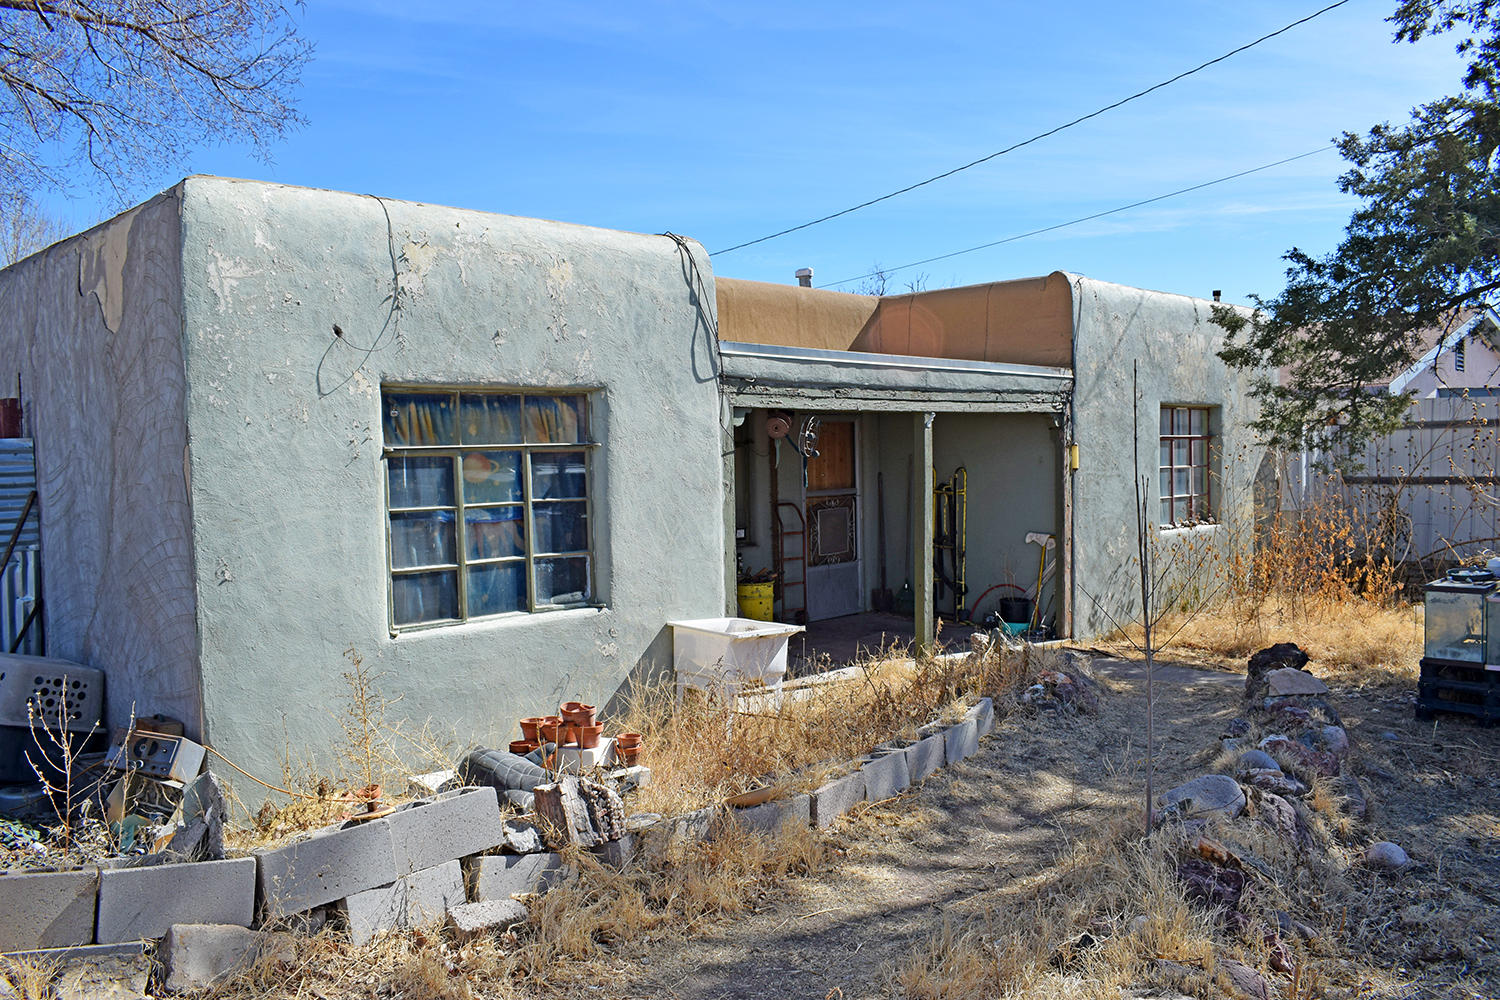 Tons of potential!! Right in the heart of Socorro, this could be the ideal location to call home or open up a business!